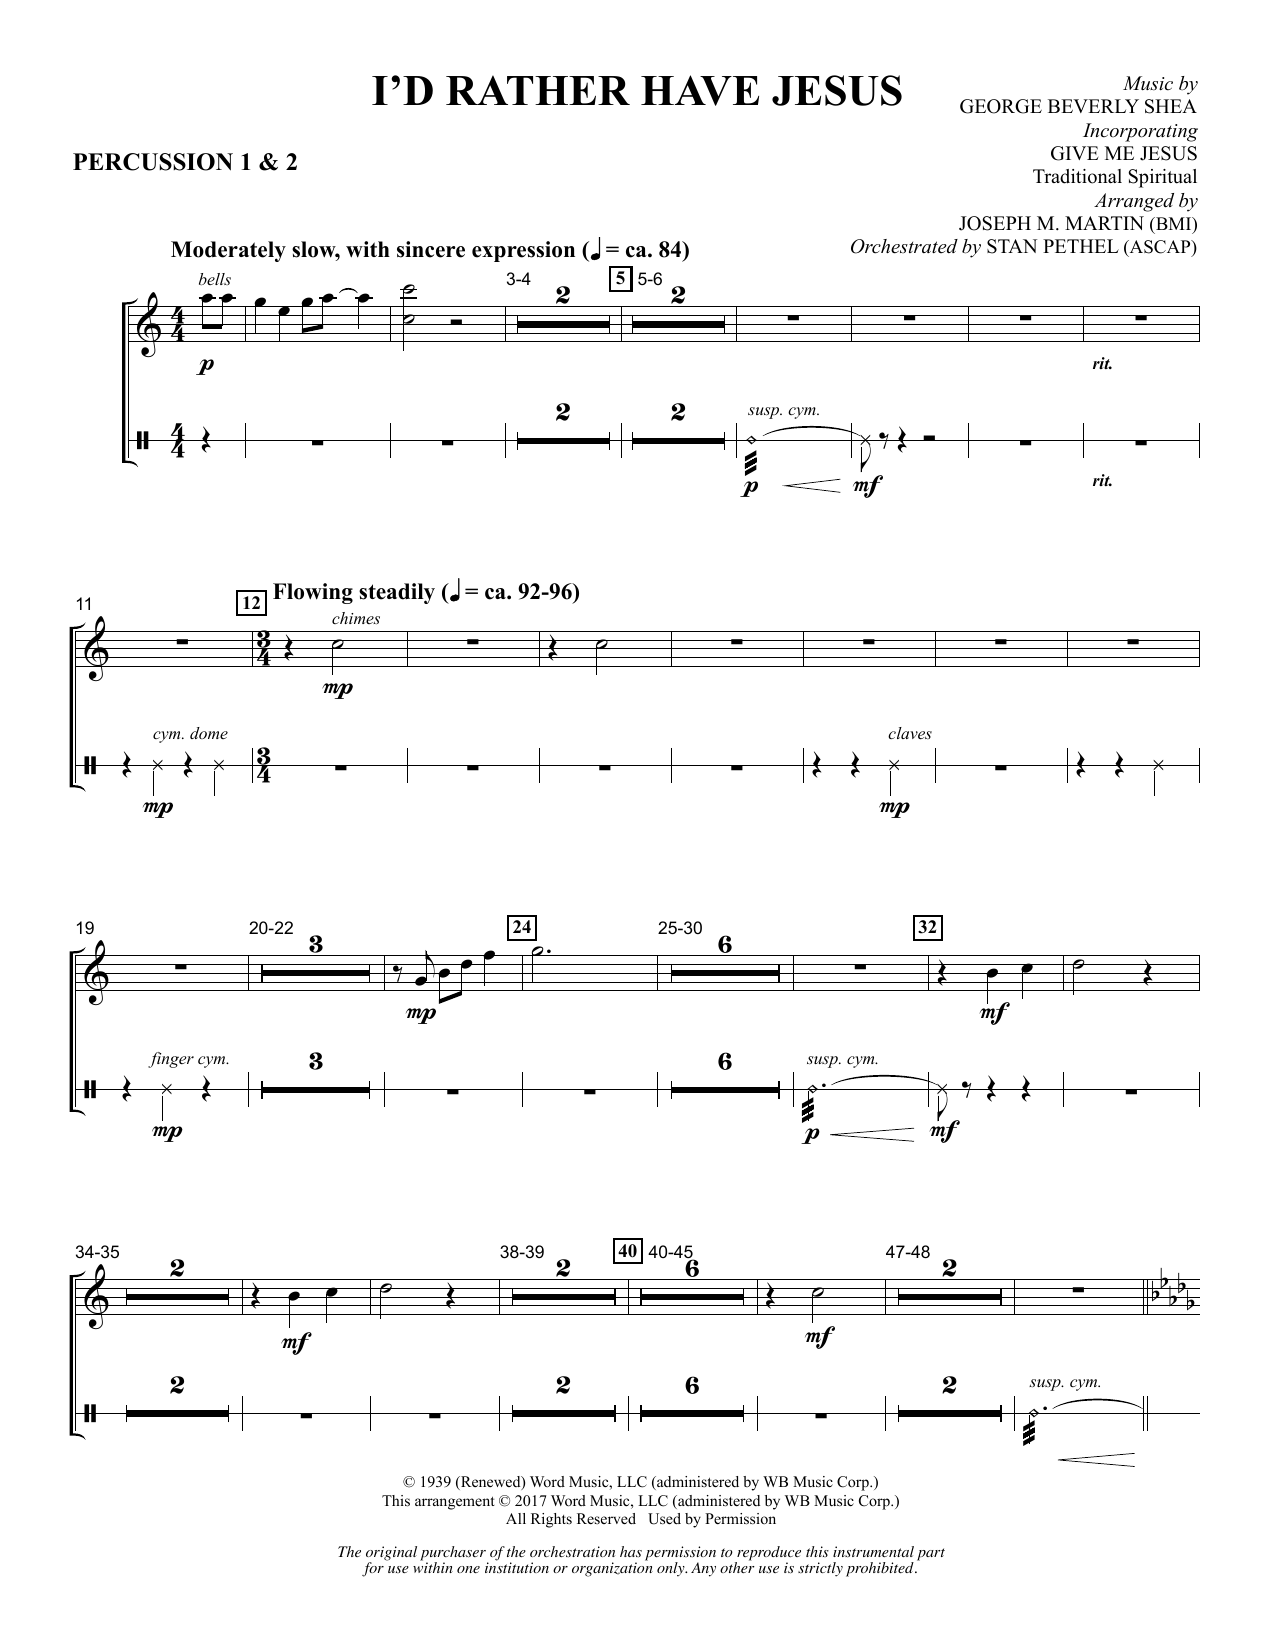 Joseph M. Martin I'd Rather Have Jesus - Percussion 1 & 2 sheet music notes and chords. Download Printable PDF.